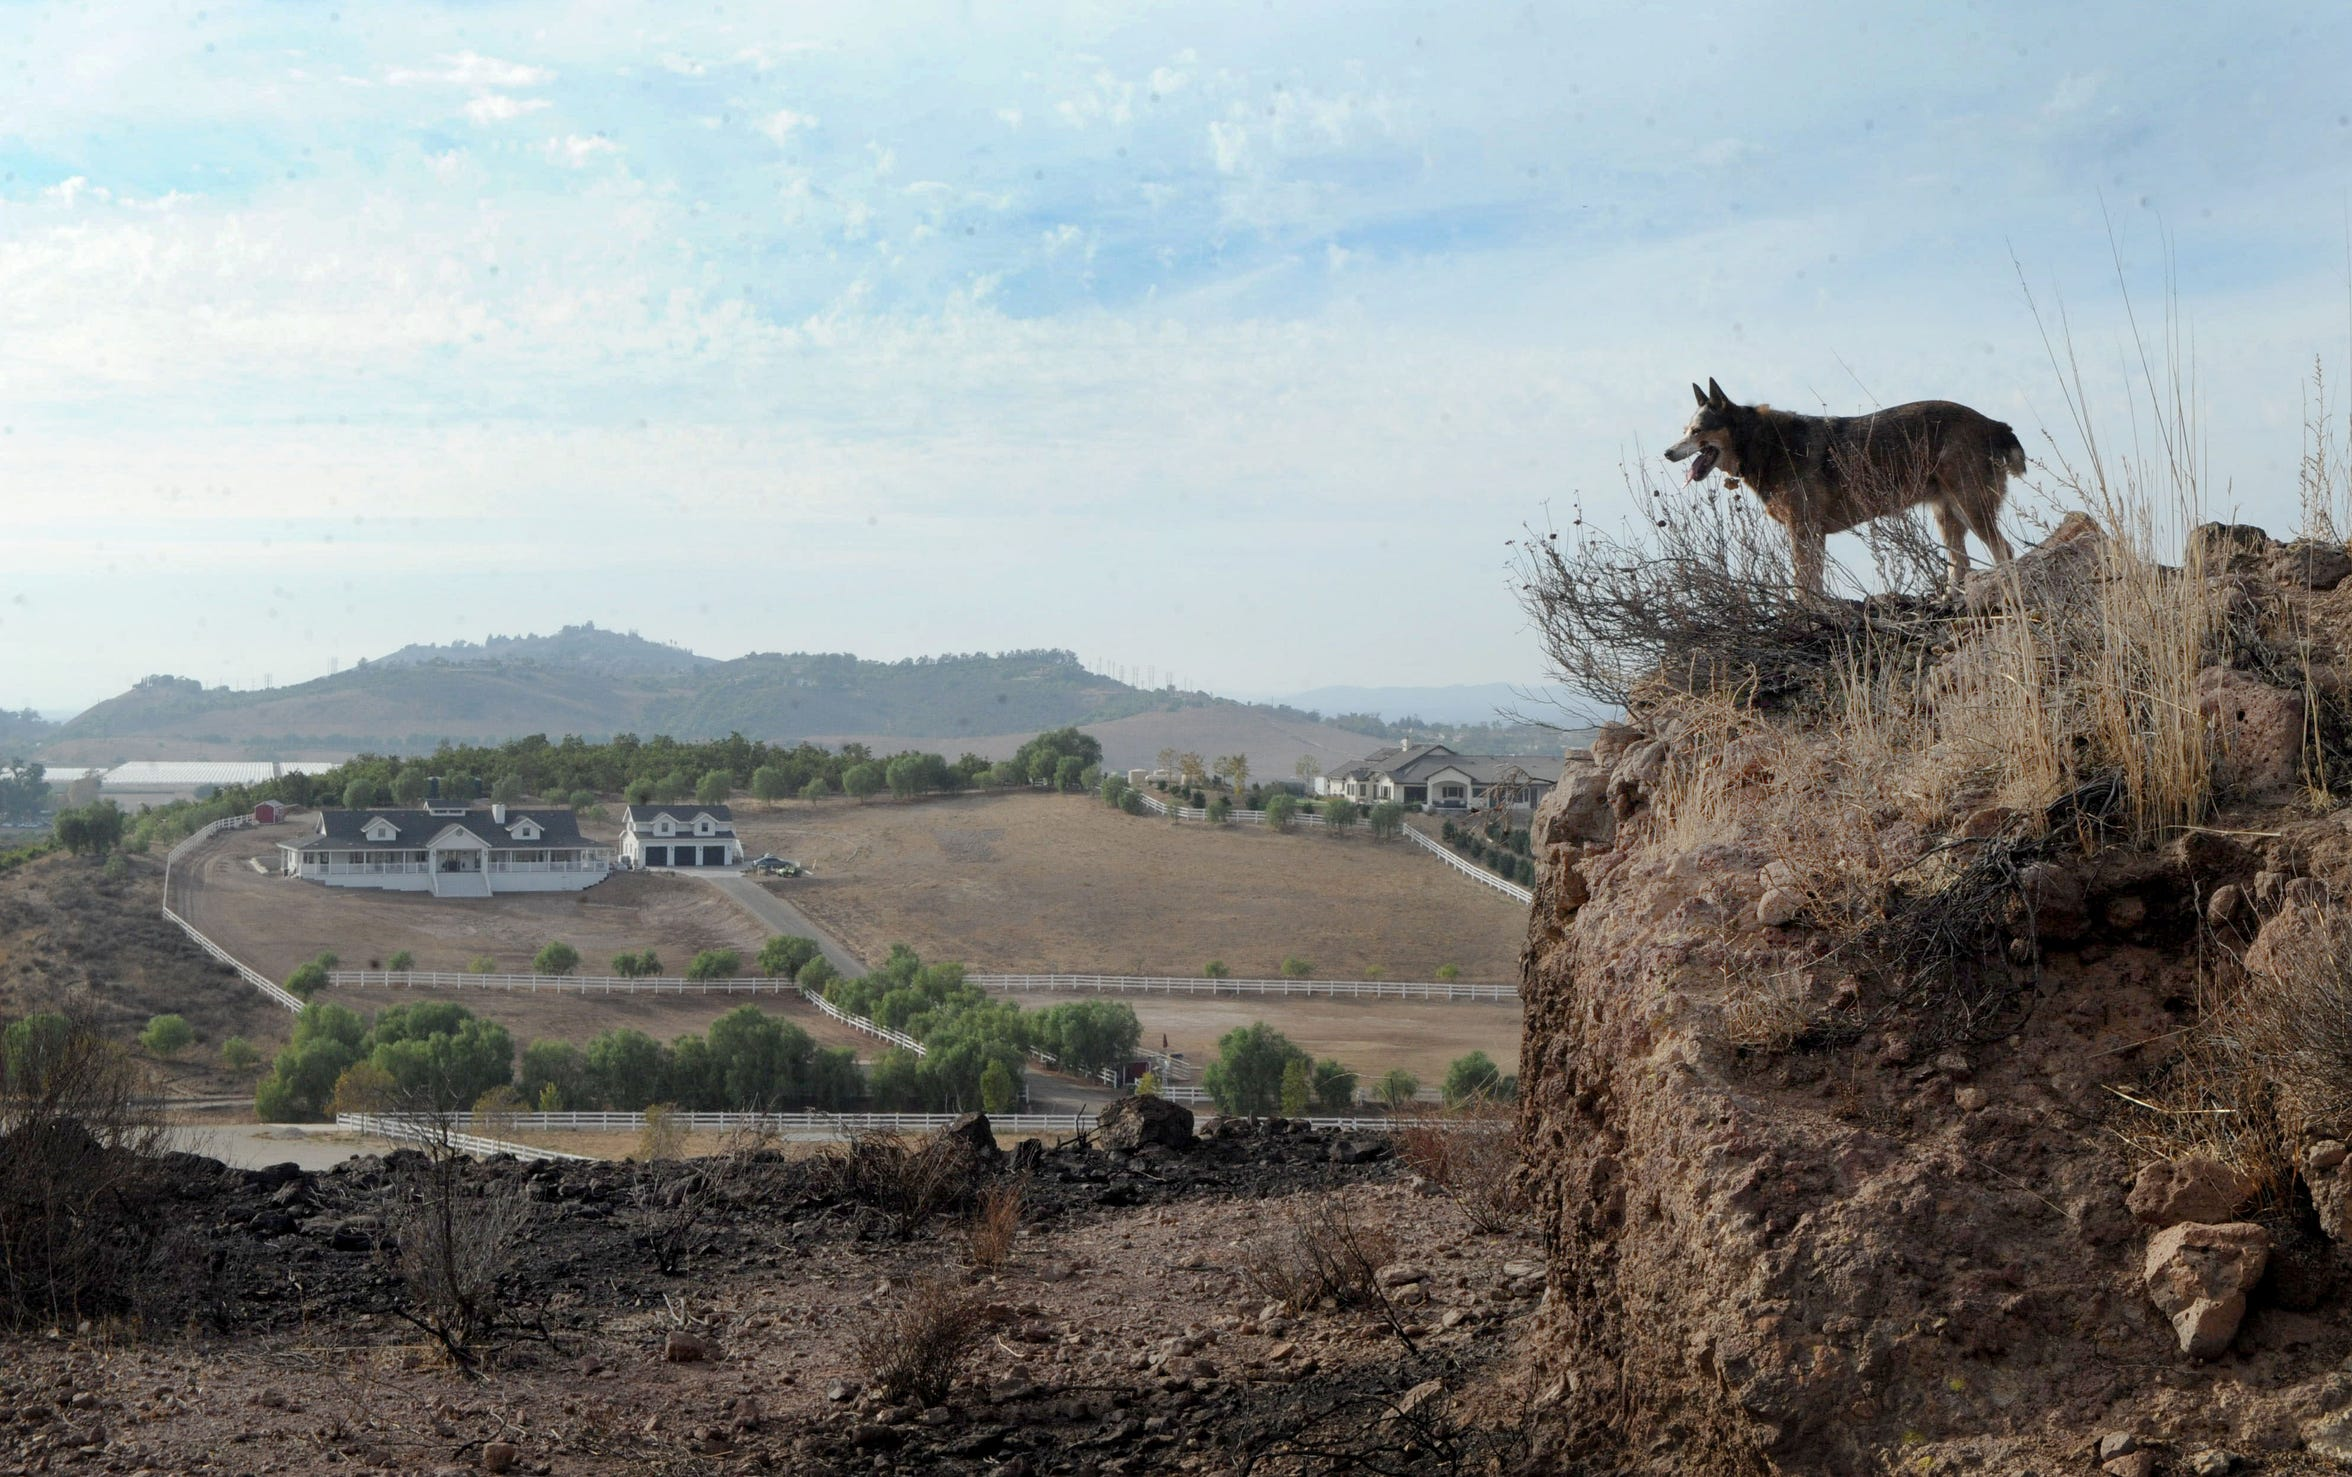 Melinda and Chuck Carmichael's dog Lucy stands on top of a hill overlooking the Tierra Rejada Valley. The Easy Fire charged through the Carmichaels' property Oct. 30, 2019. If it weren't for brush clearance, they believe their home may have been lost.